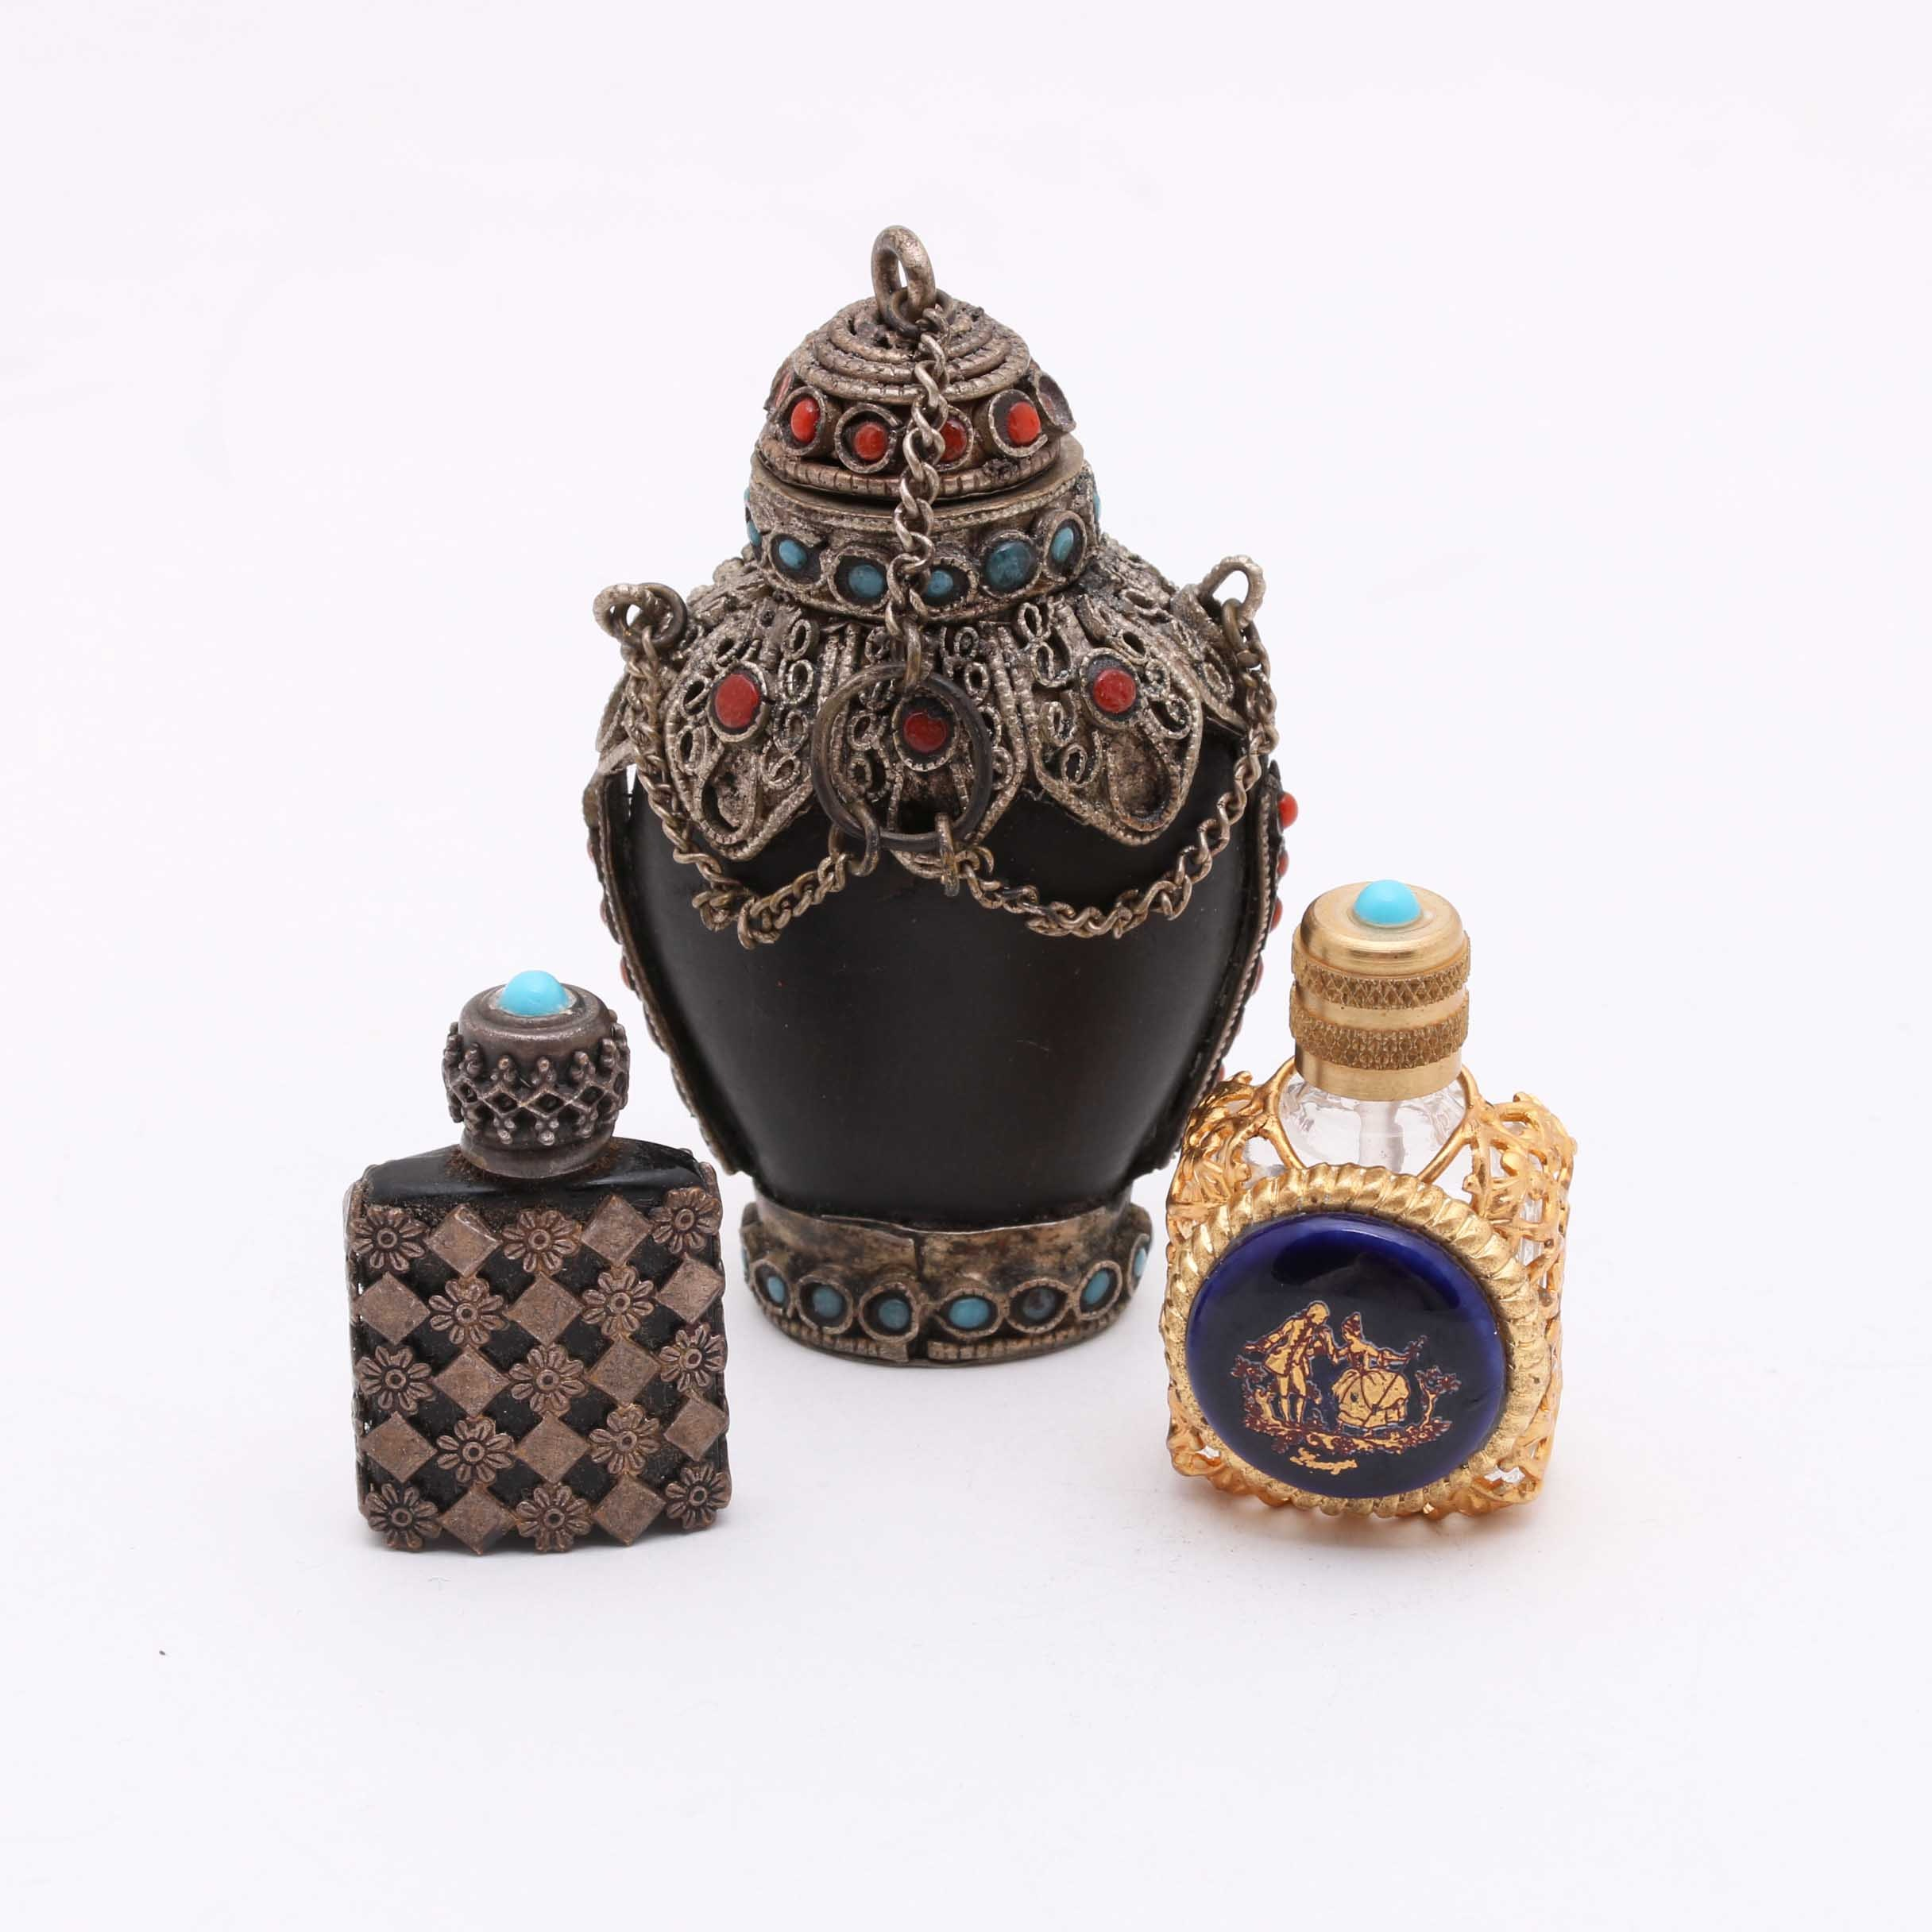 Assortment of Snuff and Perfume Bottles